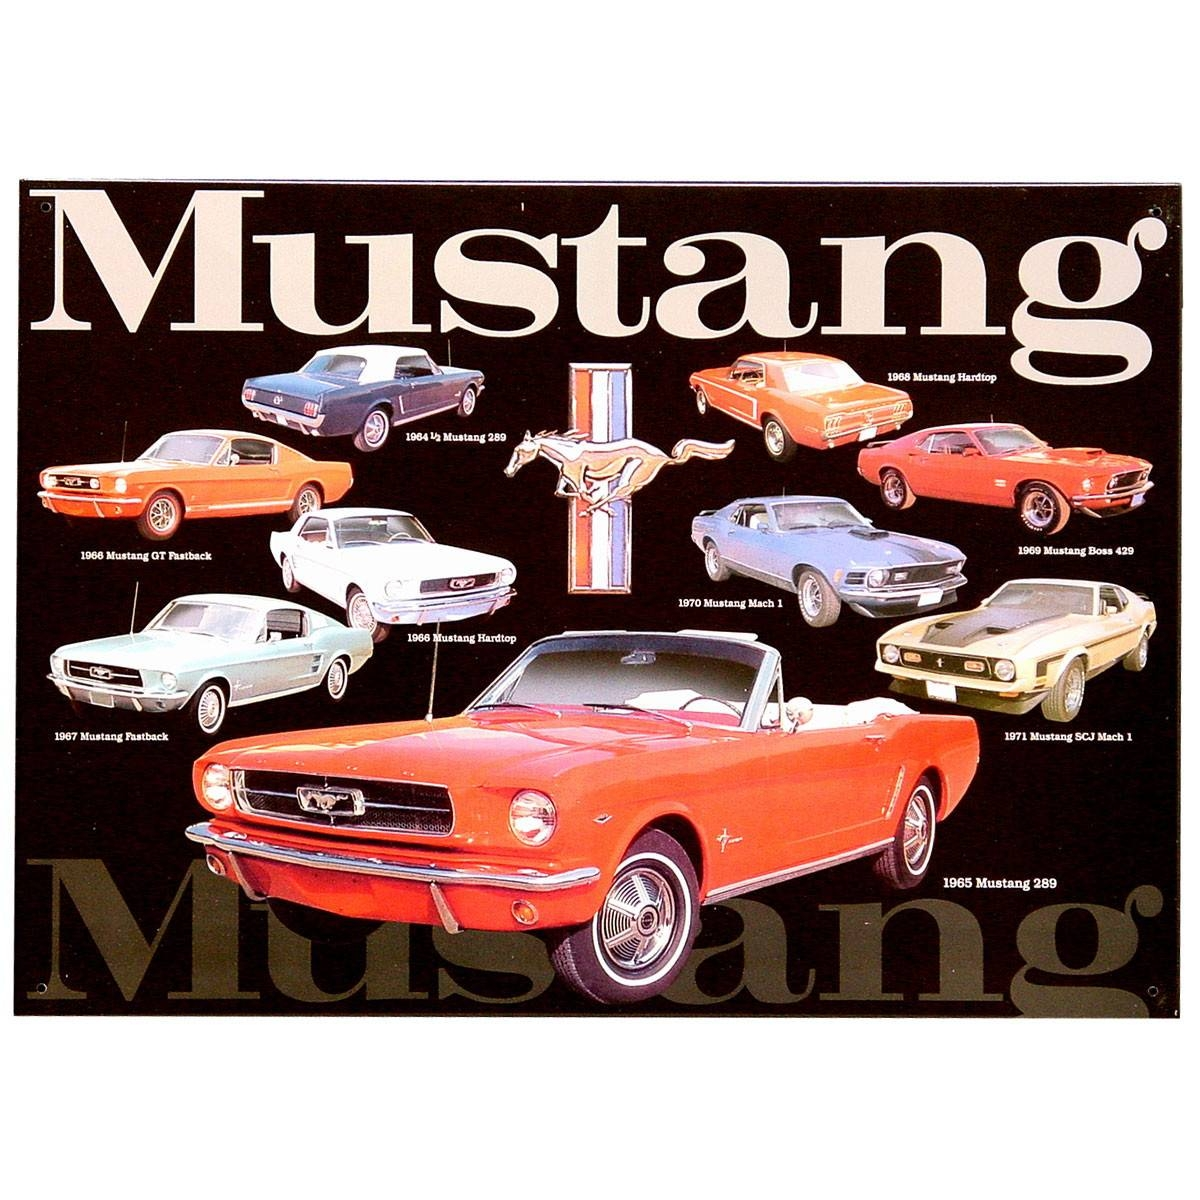 Mustang Collage Metal Sign | Ford Garage Signs | Retroplanet With Regard To Latest Ford Mustang Metal Wall Art (View 11 of 20)